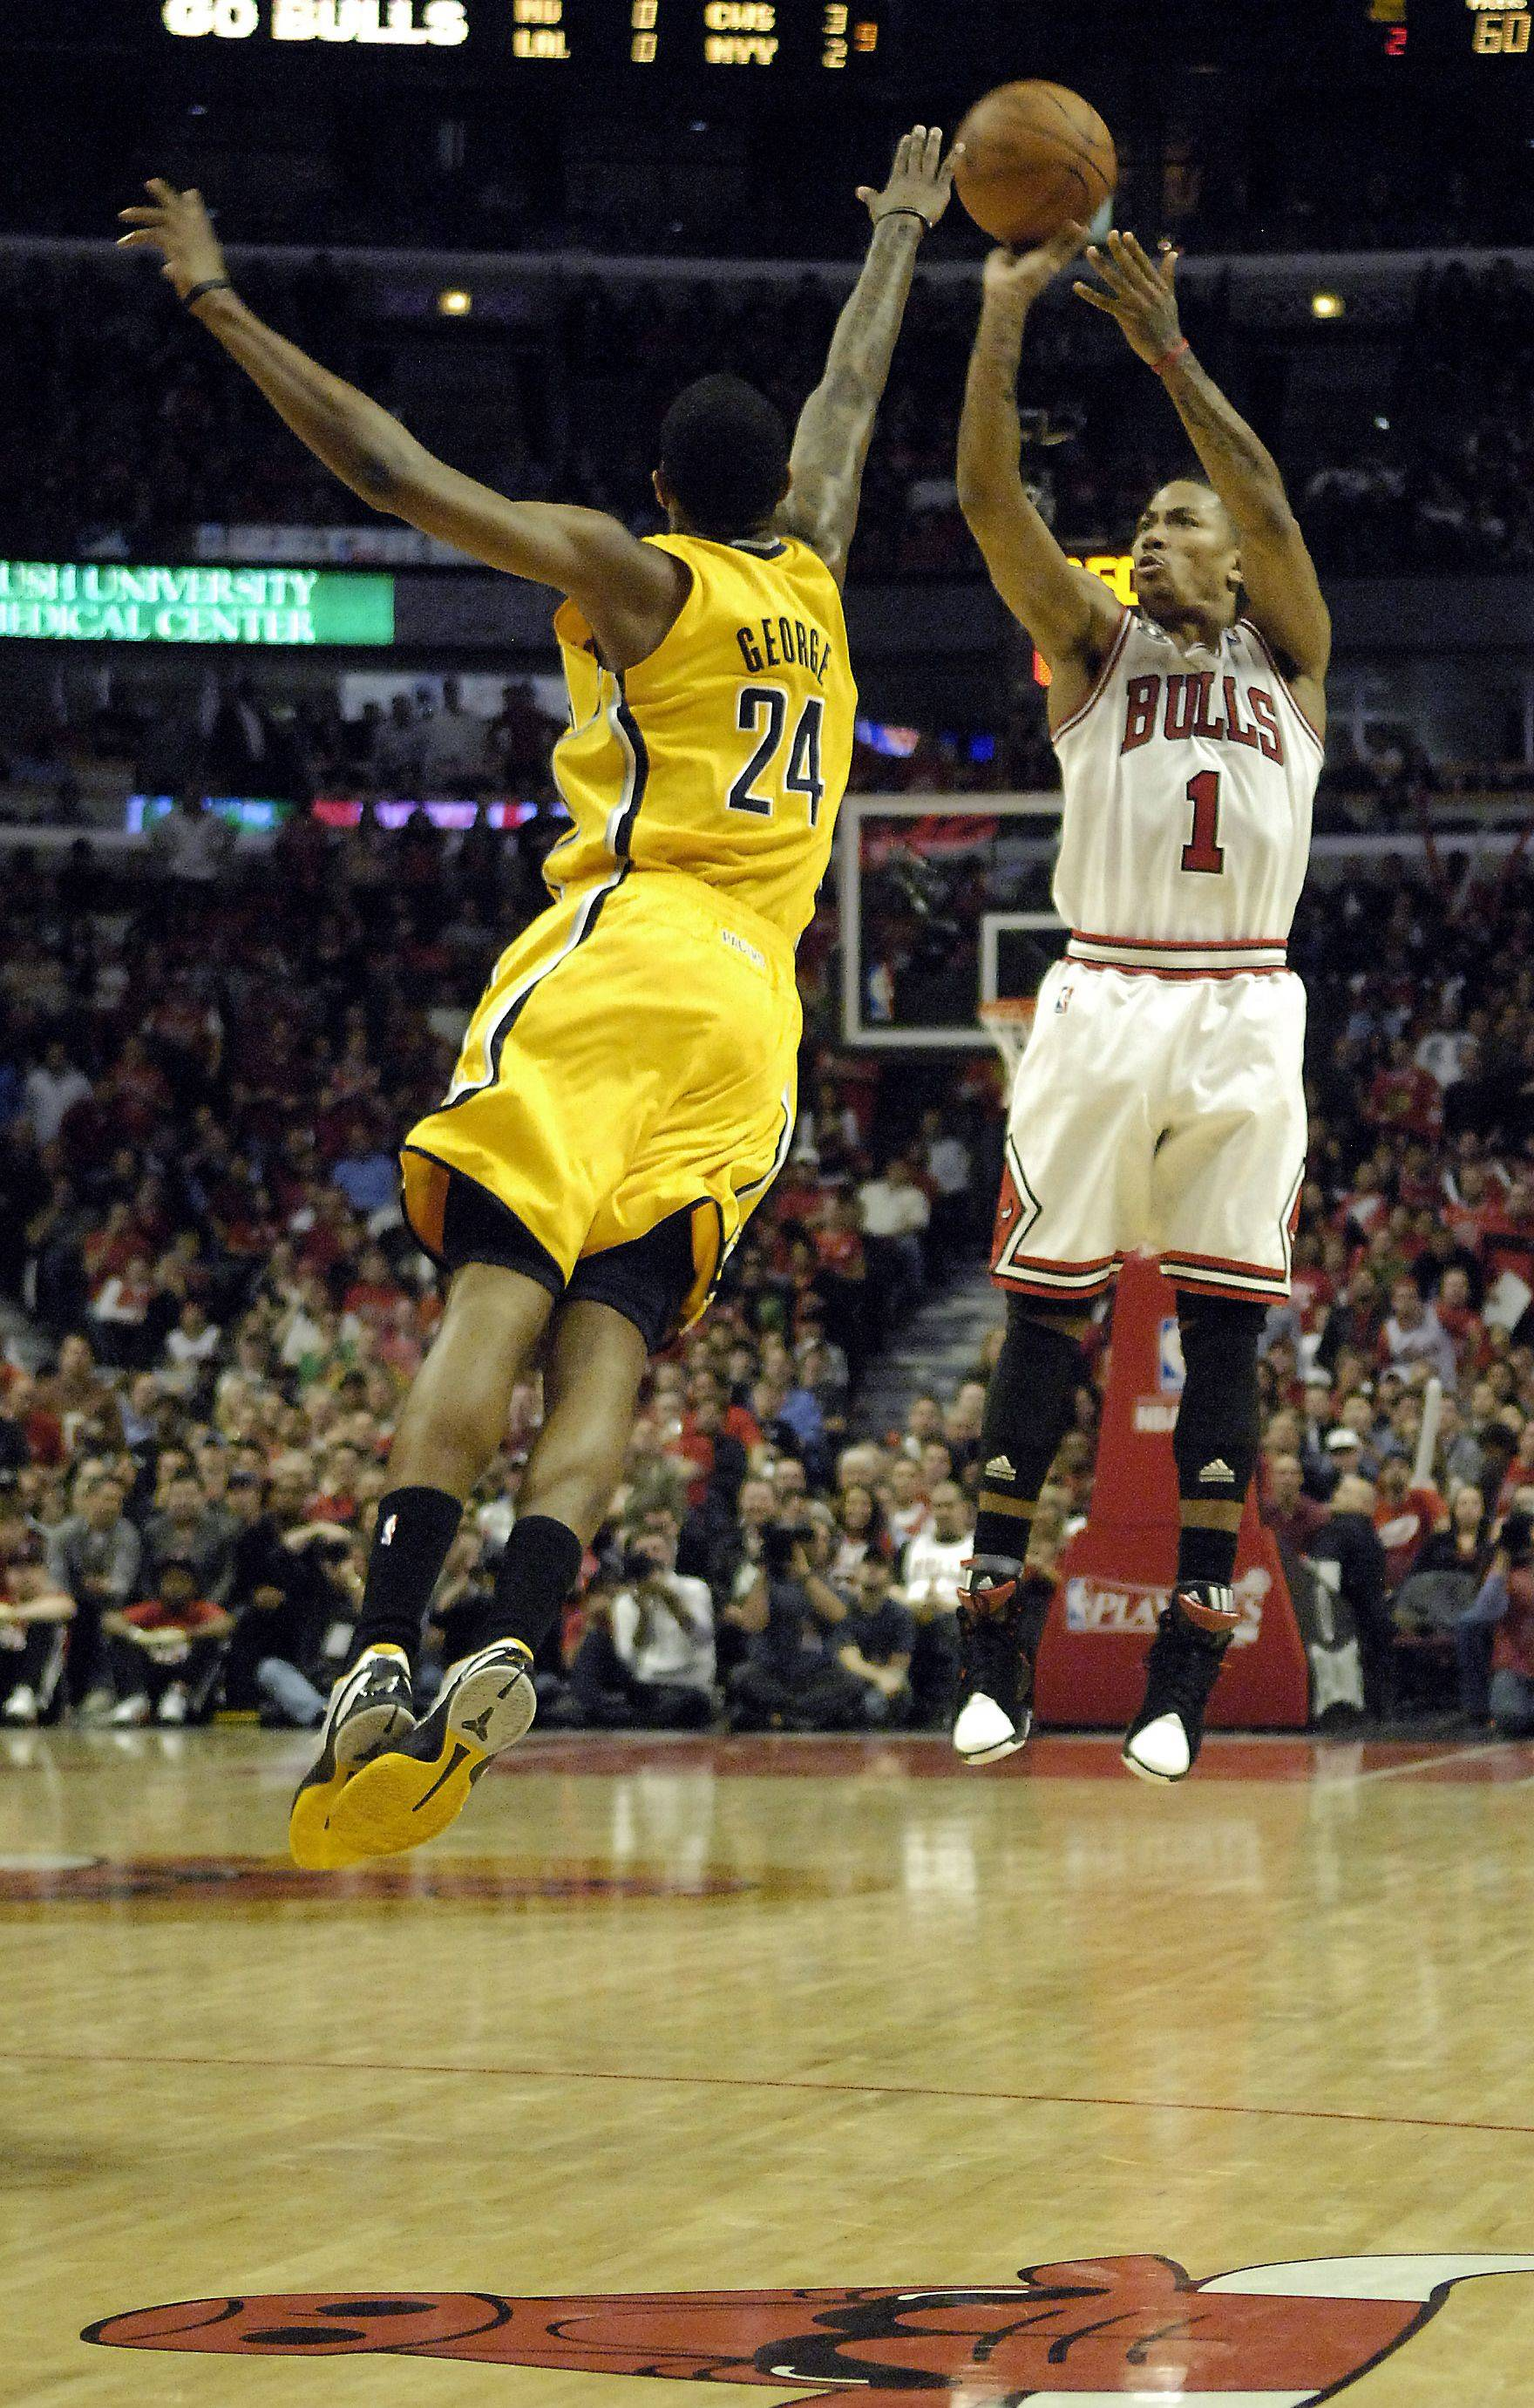 No surprise: Rose stars in Bulls' clincher